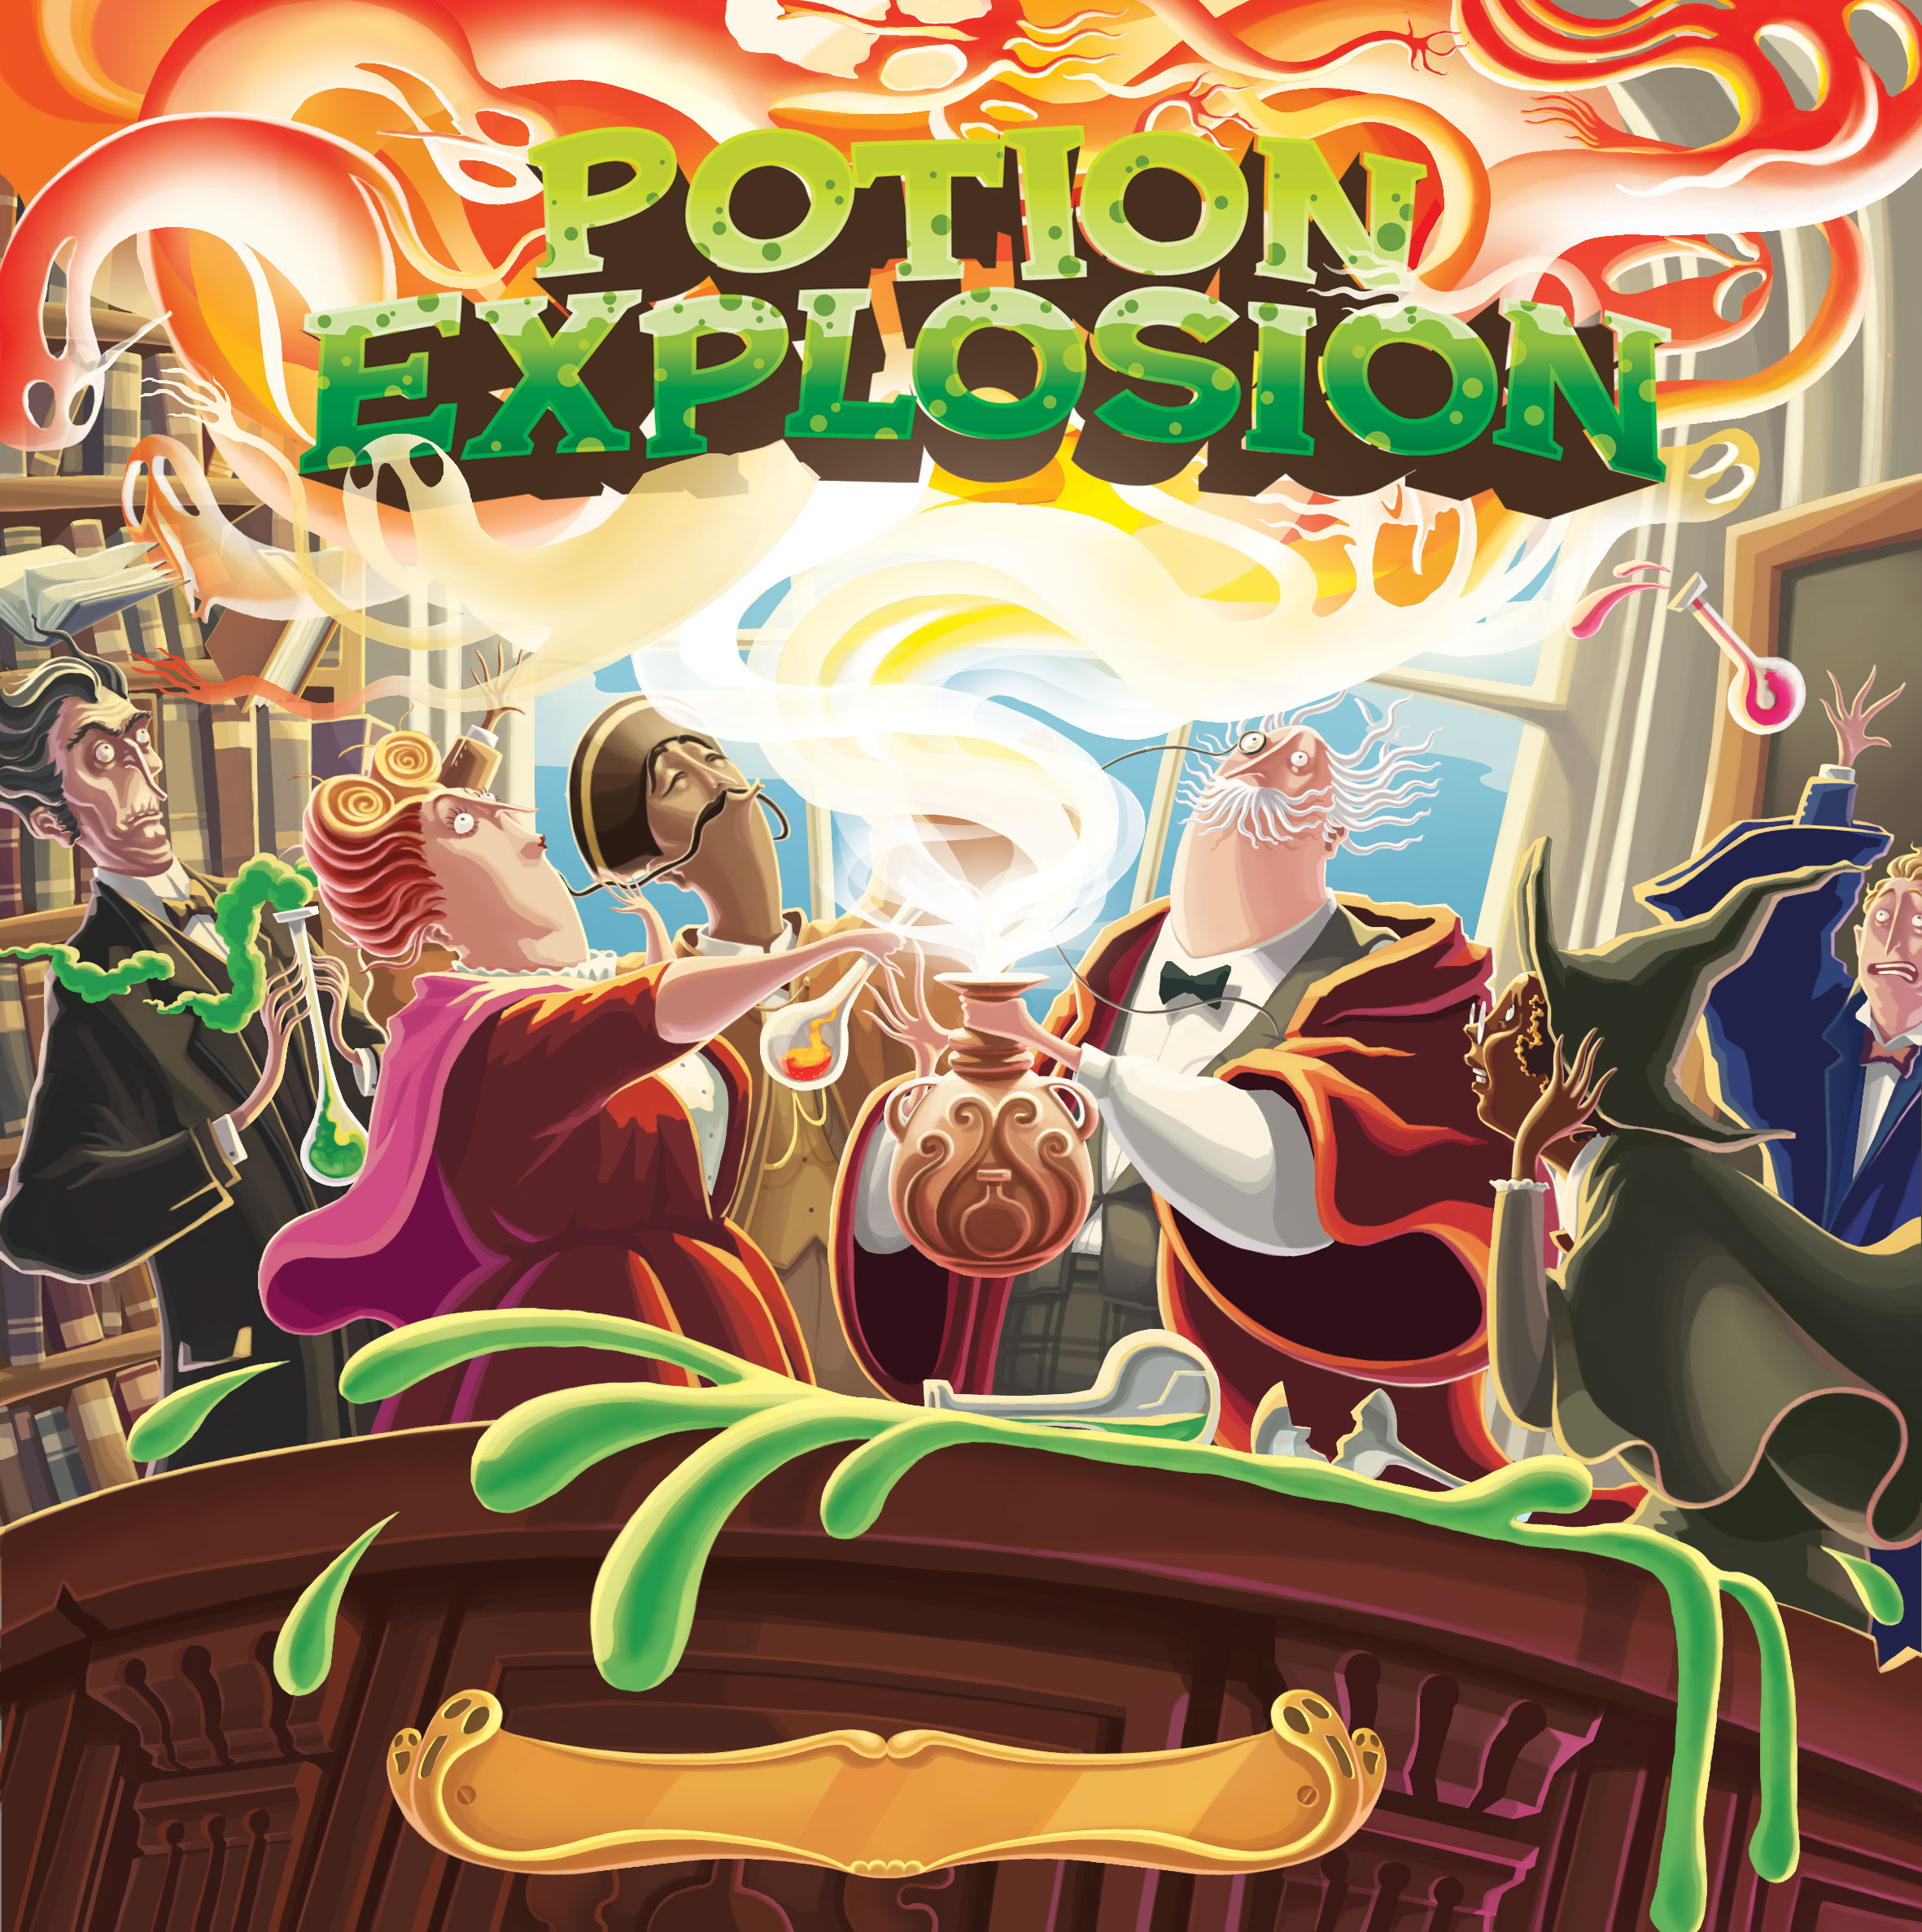 PotionExplosion_The fifth Ingredient